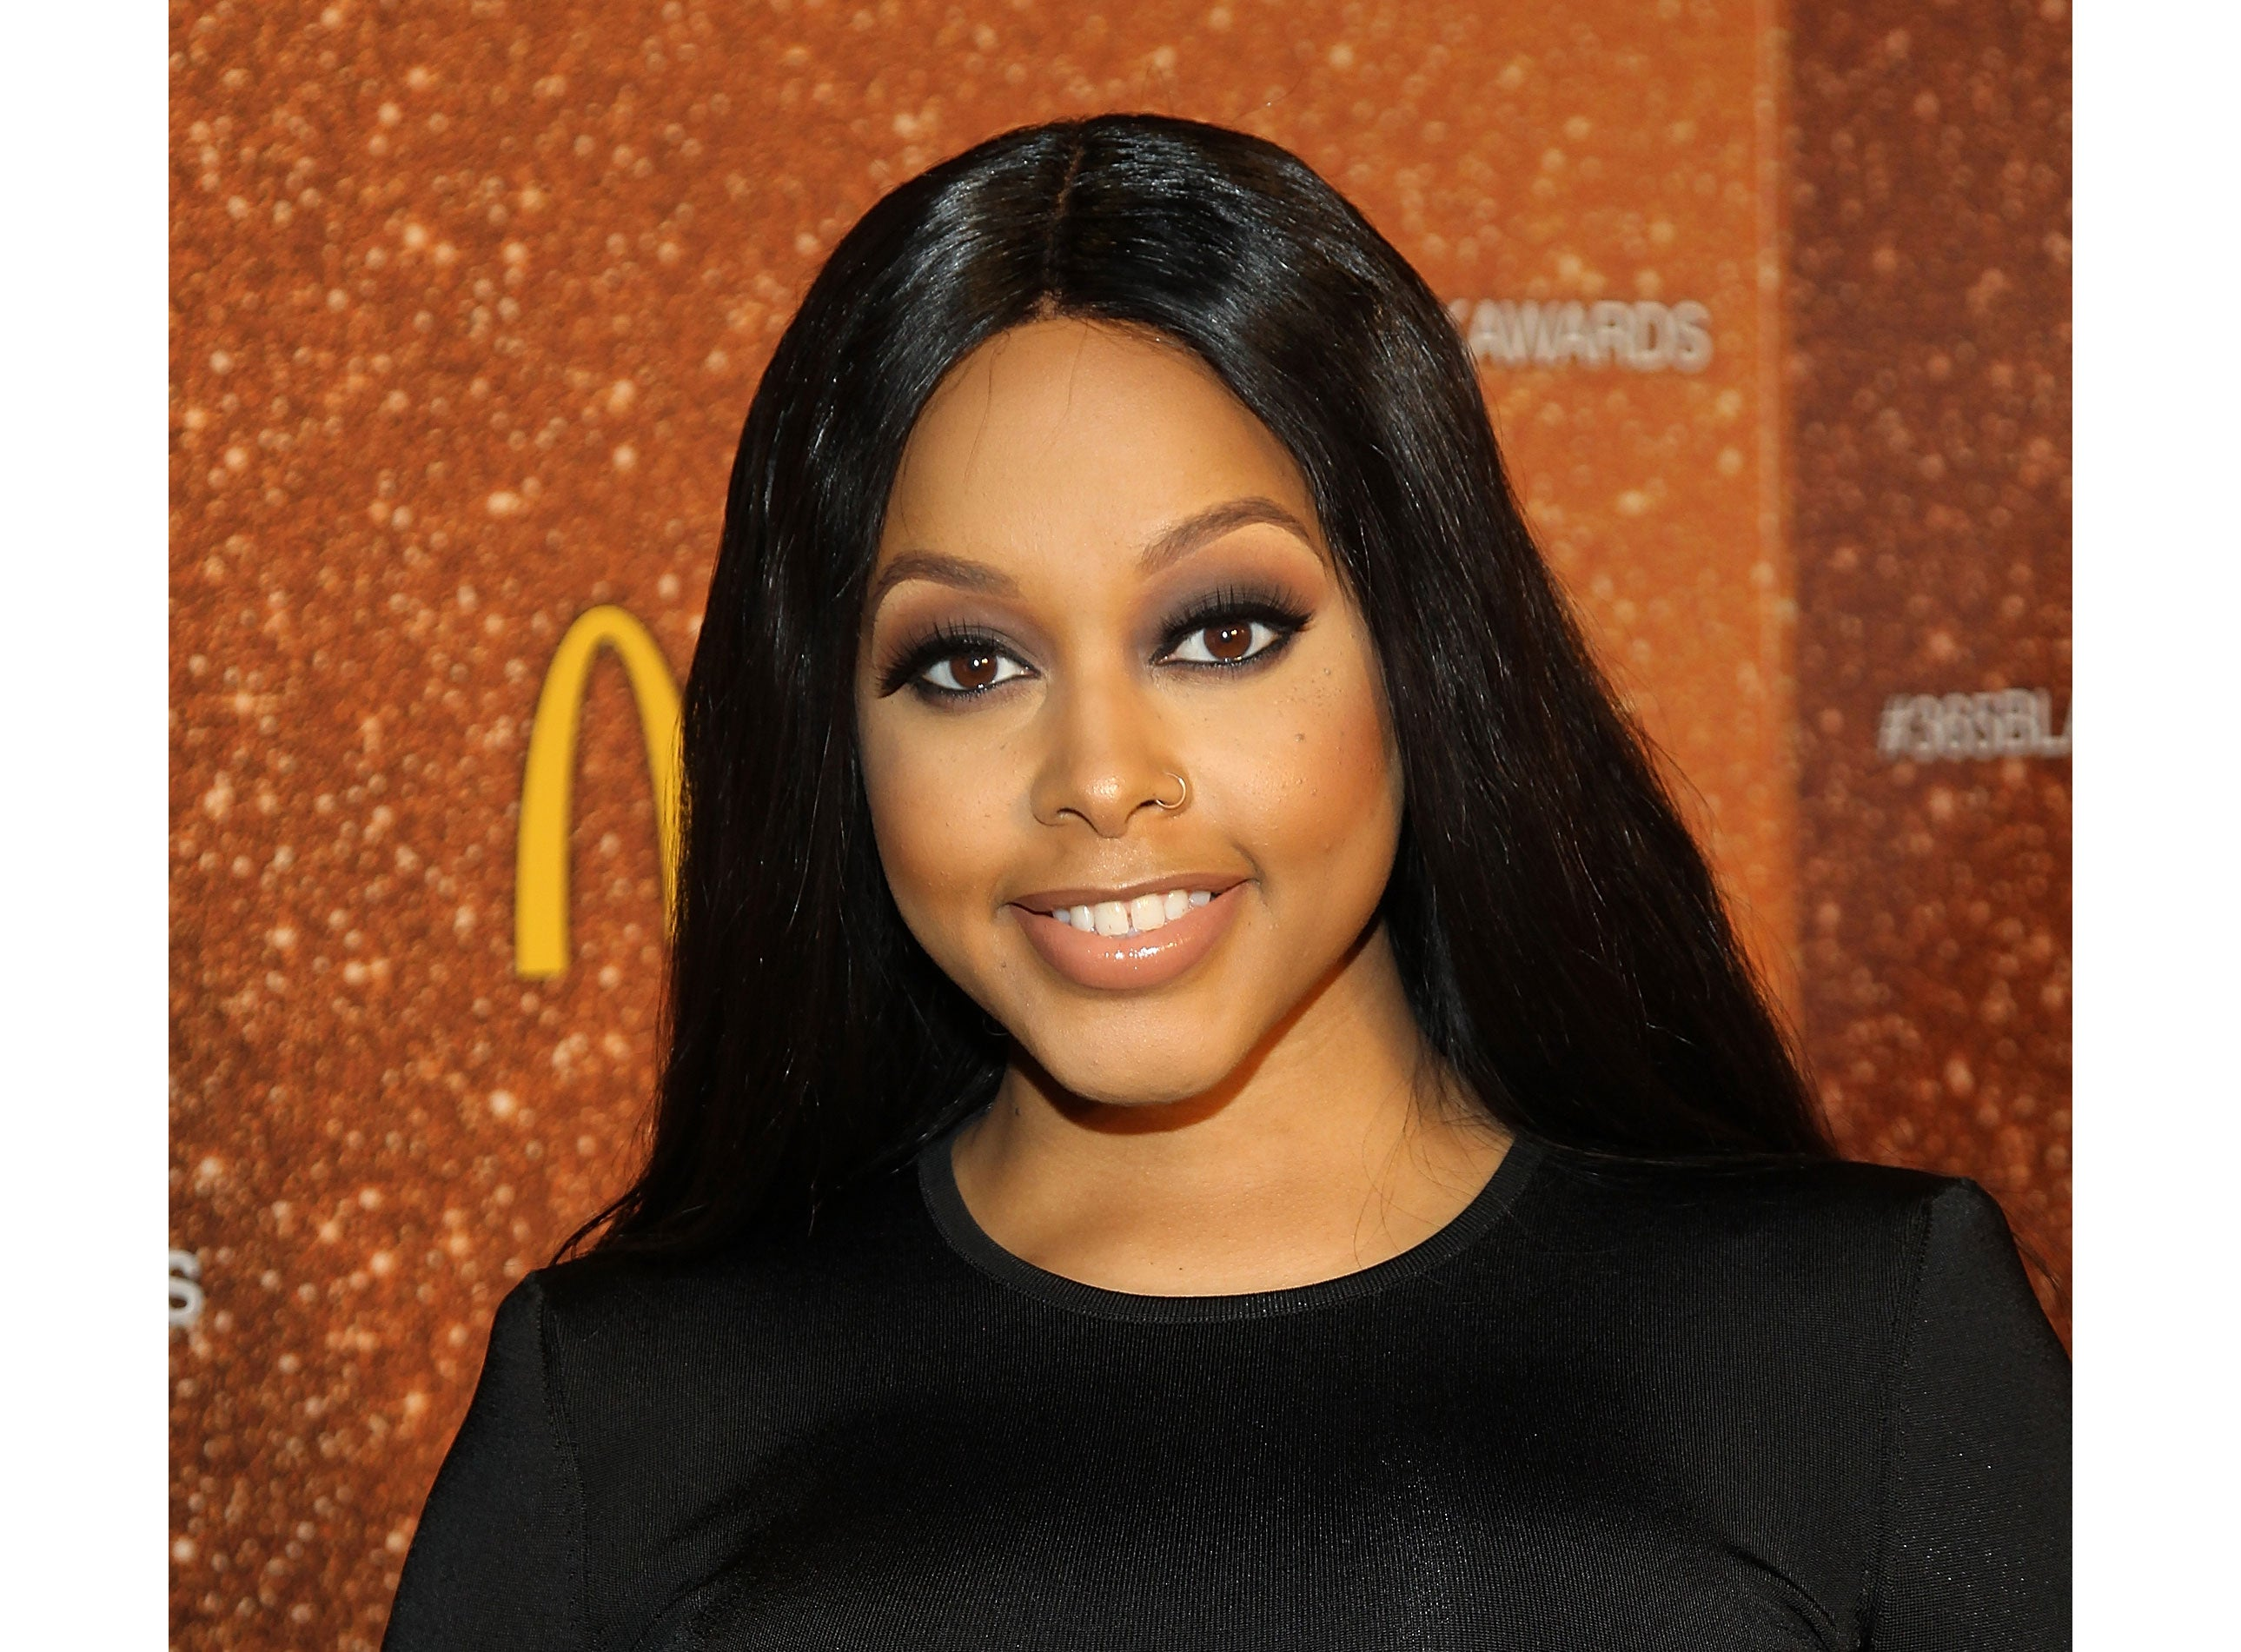 Chrisette Michele Believes Boycotts and Marches Are Not the Answer